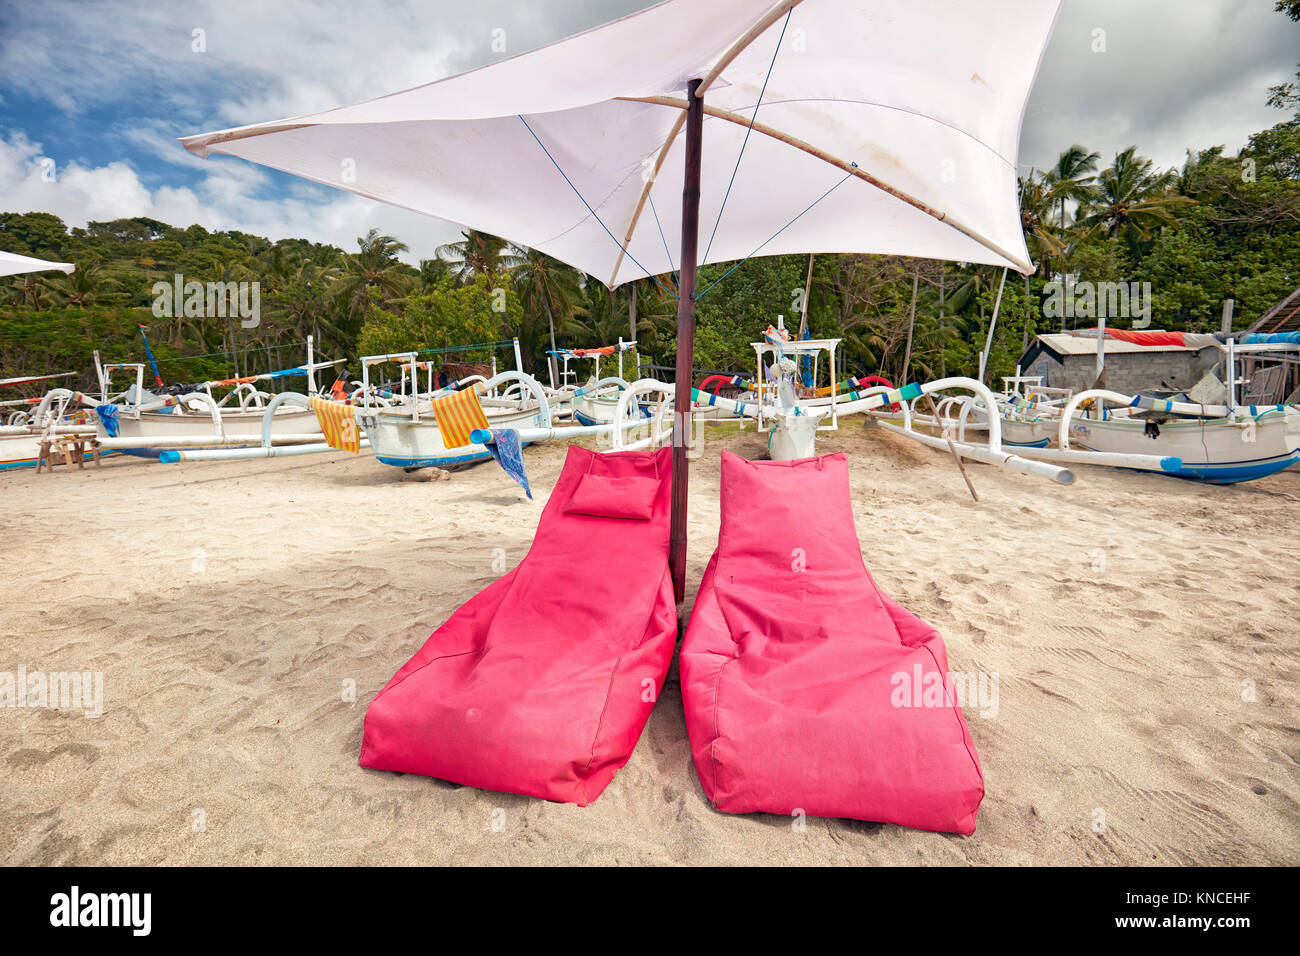 Bean bag chairs and umbrella on White Sand Beach (Pantai Bias Putih). Manggis subdistrict, Karangasem Regency, Bali, - Stock Image